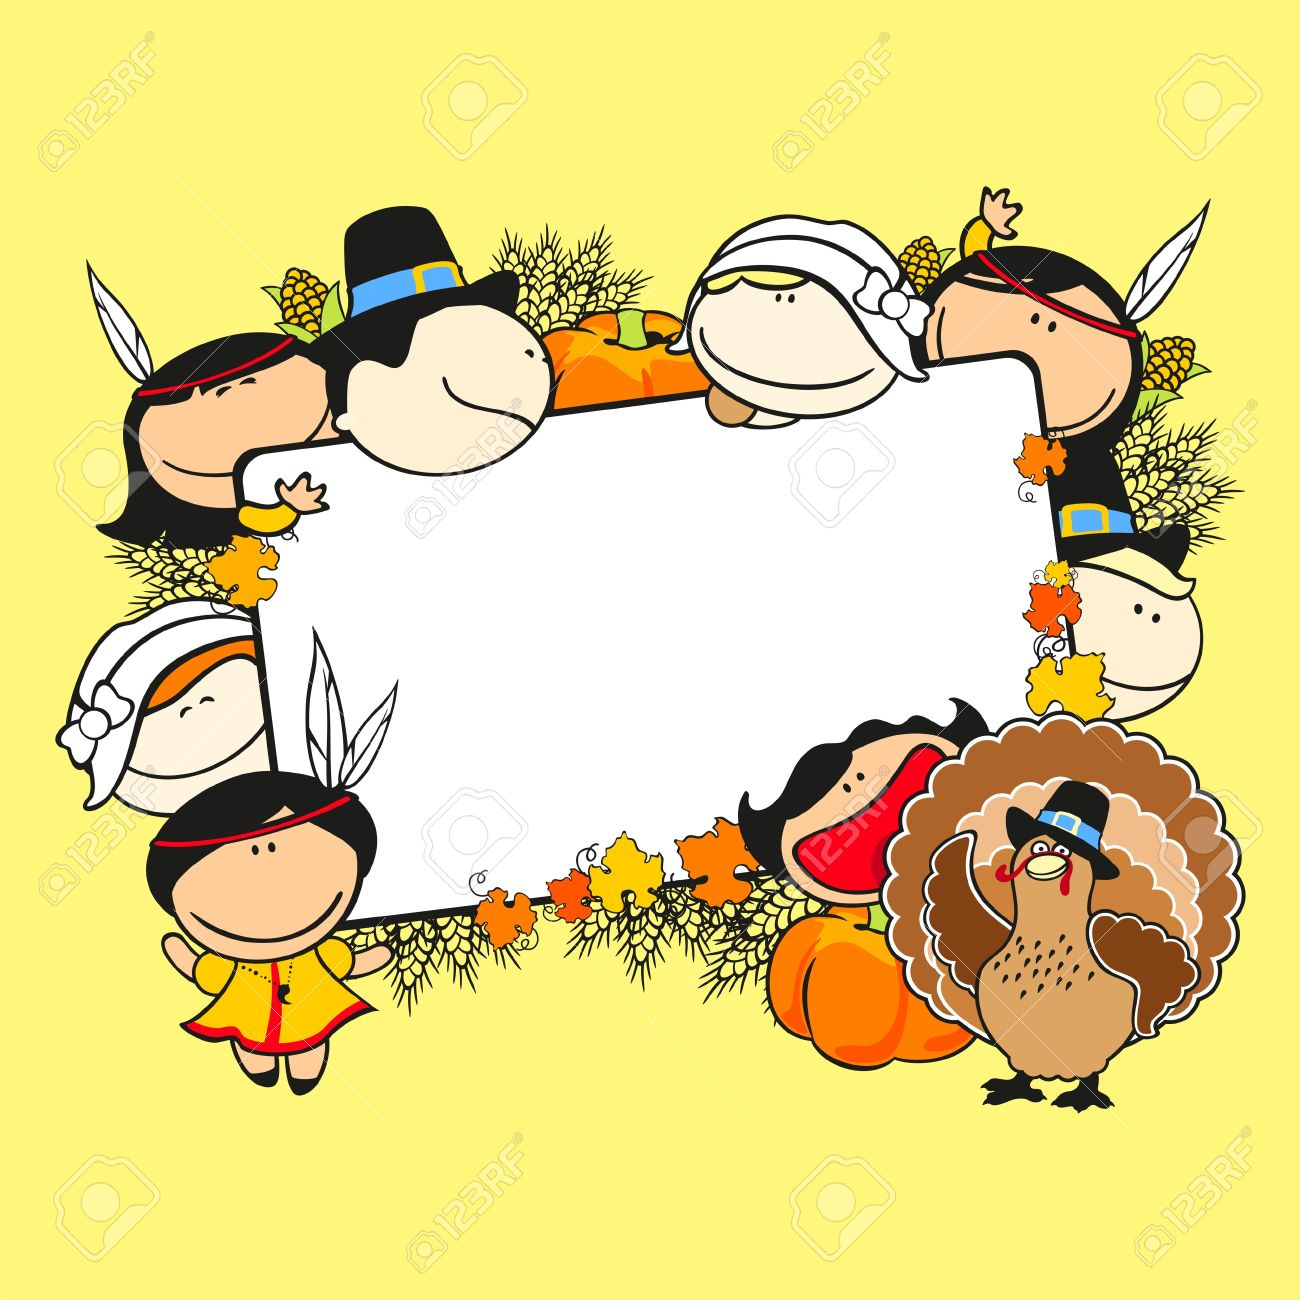 Thanksgiving Day Frame With Kids Royalty Free Cliparts, Vectors, And ...